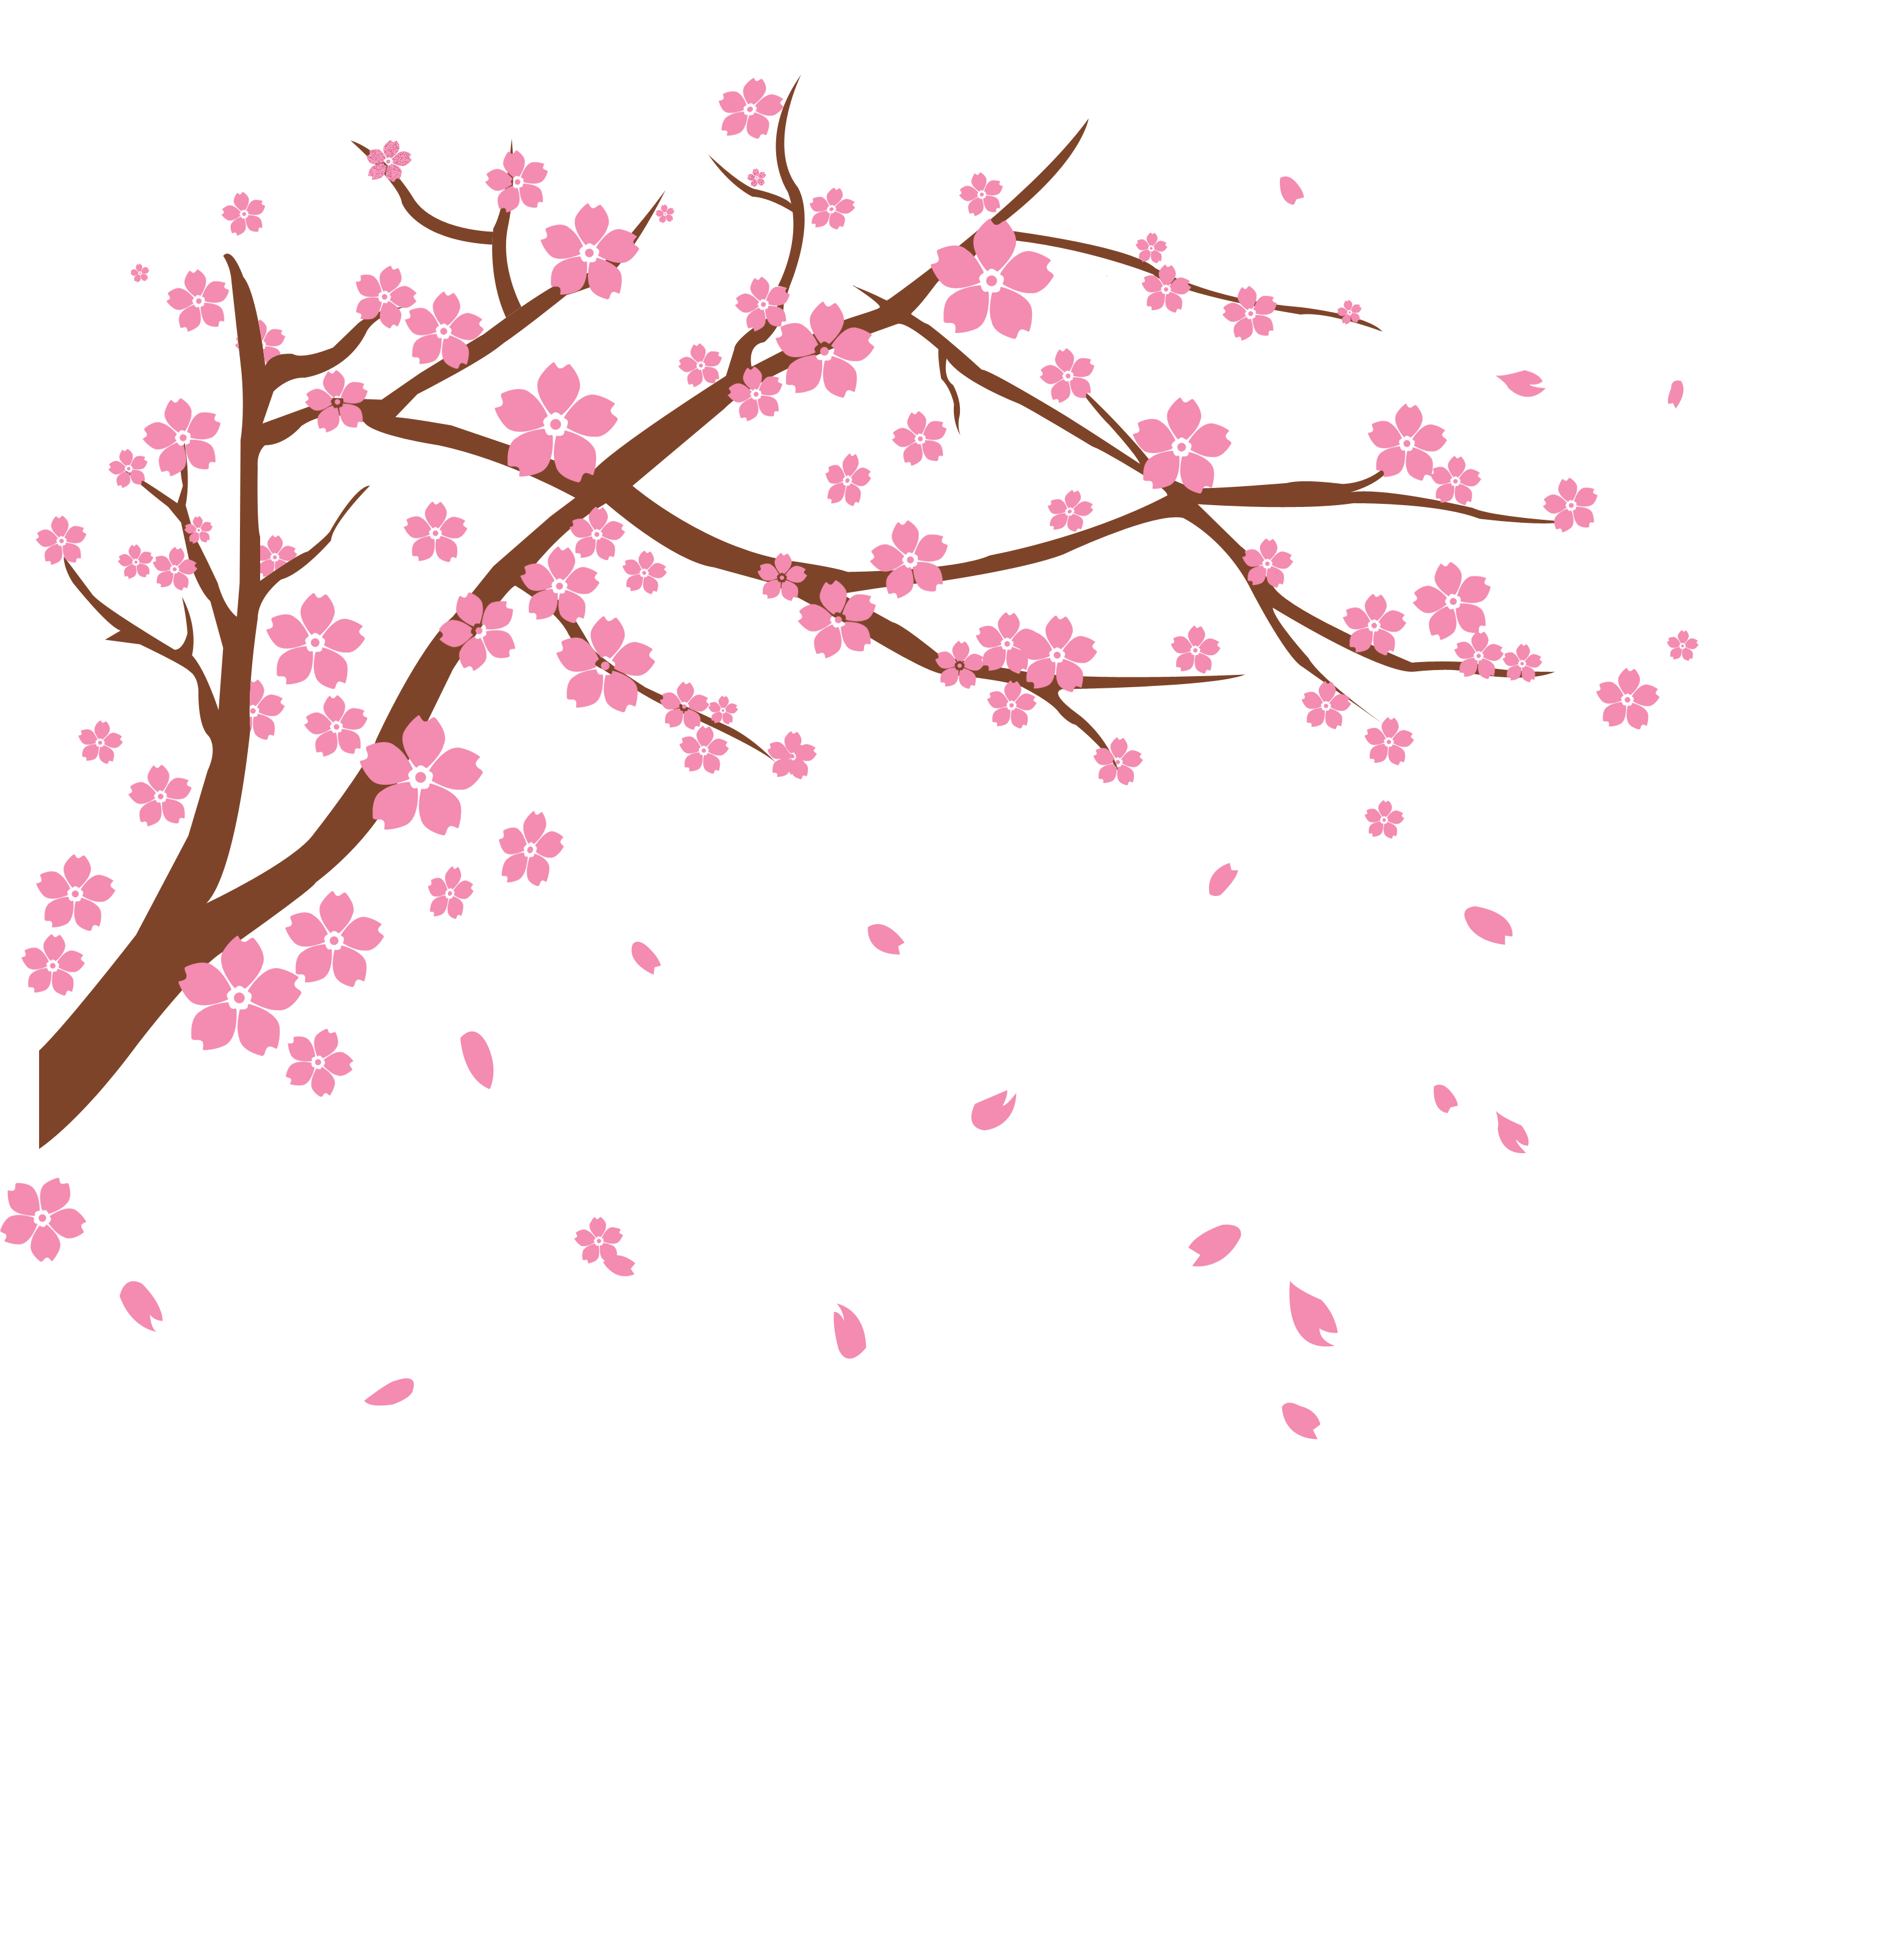 Cherry Tree Branch Picture Royalty Free Download Cherry Blossom Art Cherry Blossom Drawing Cherry Blossom